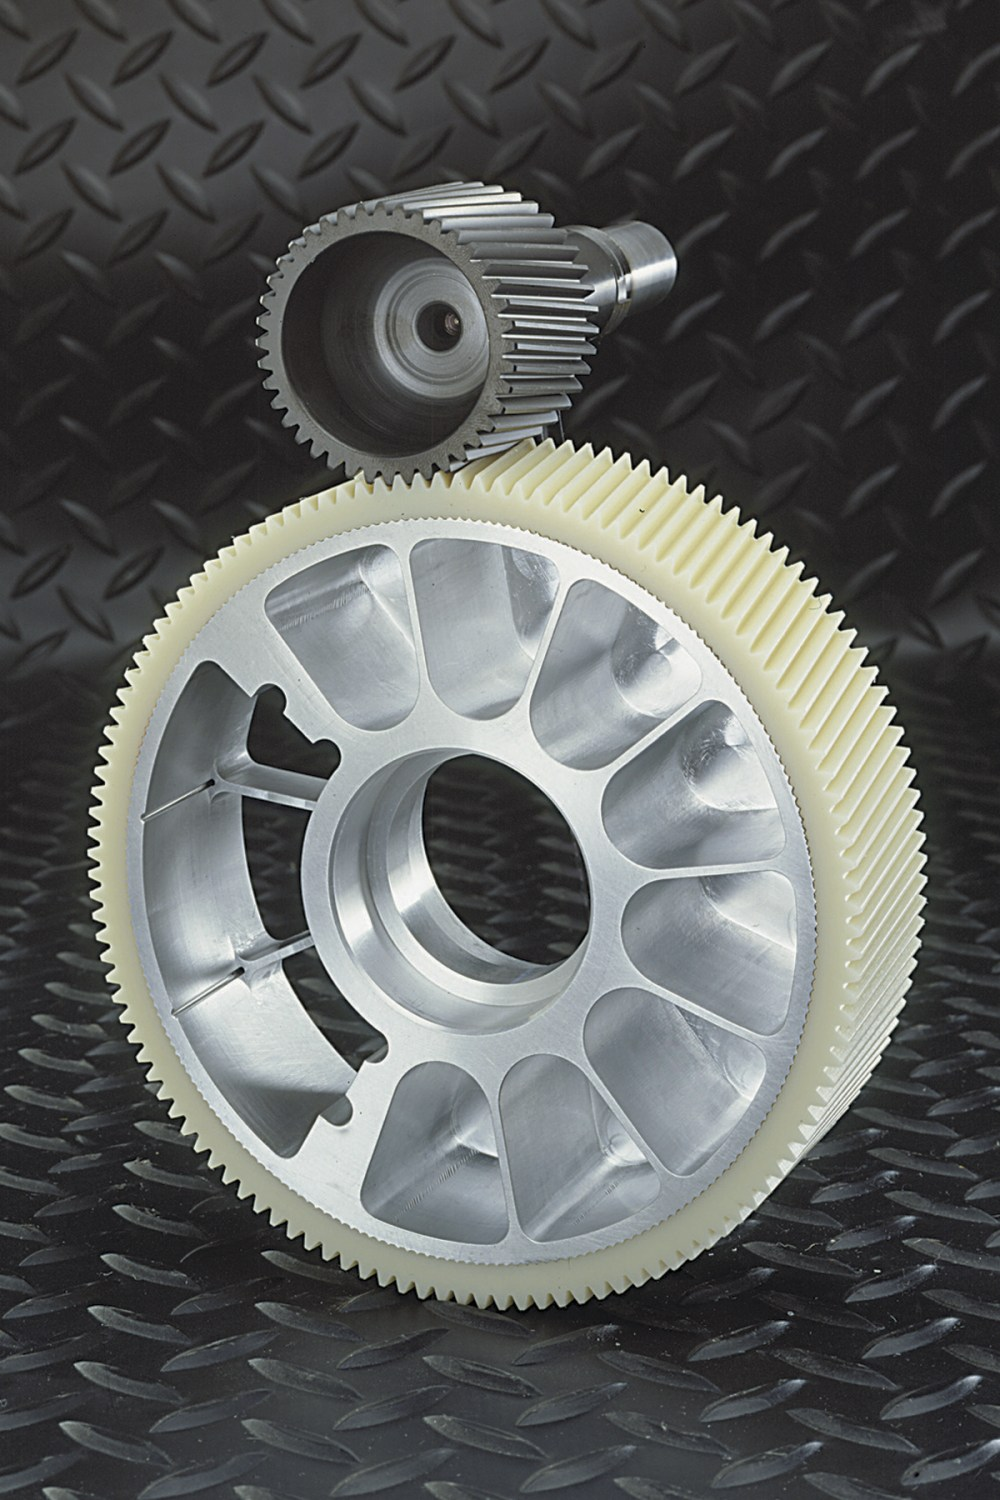 medium resolution of these are self lubricating metal core gears from intech for applications with frequent start